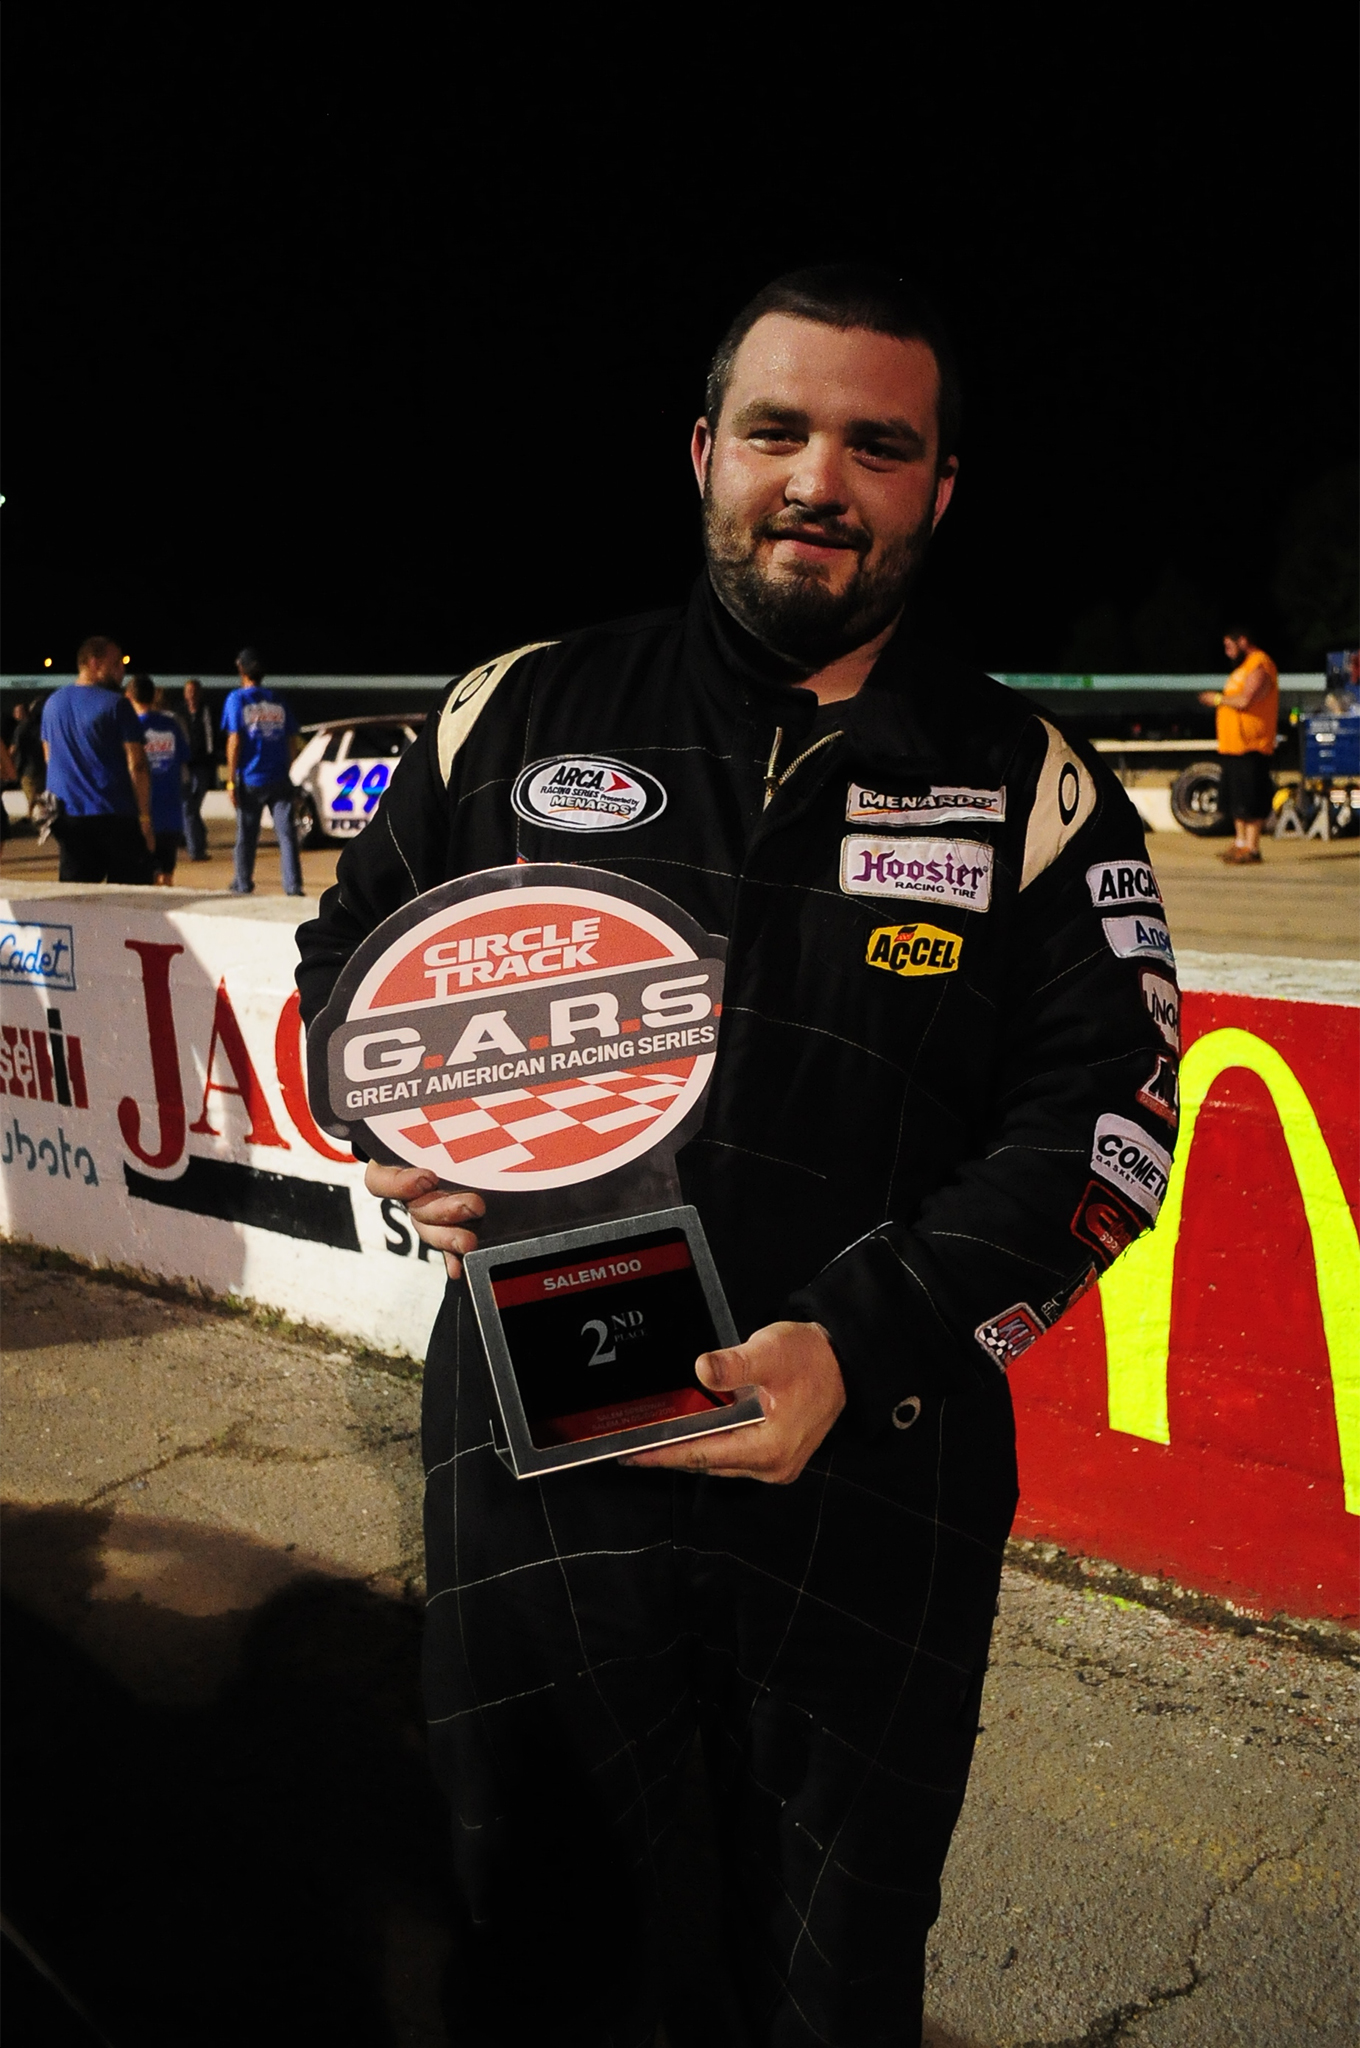 Another Kentucky racer, Blake Hillard from Owensboro, finished Second and pocketed $2,500.